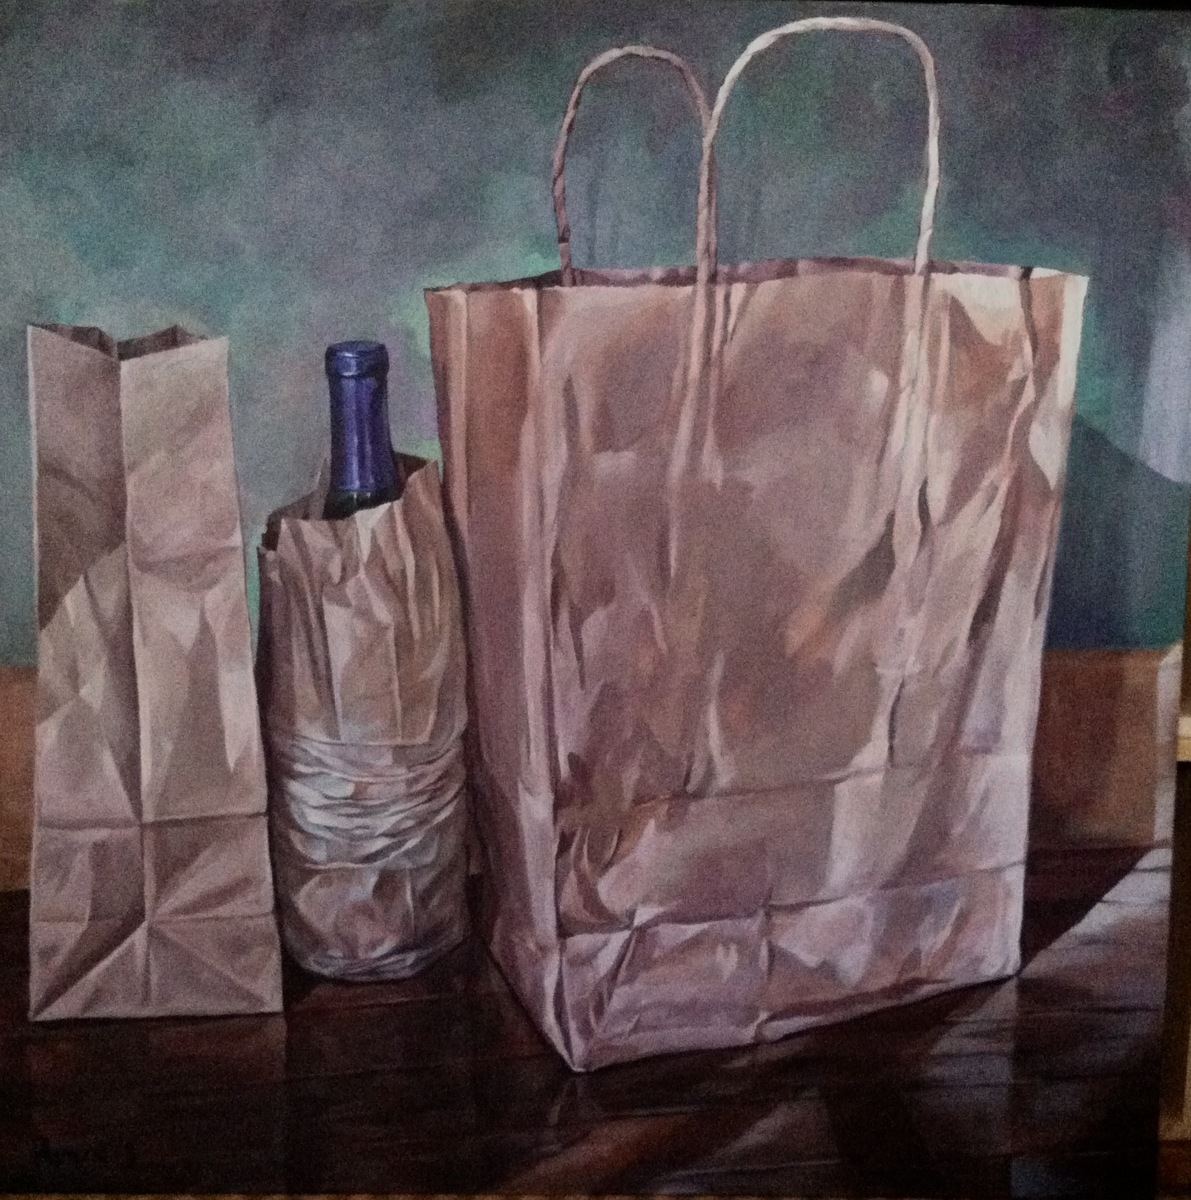 Paper Bags 2 (large view)